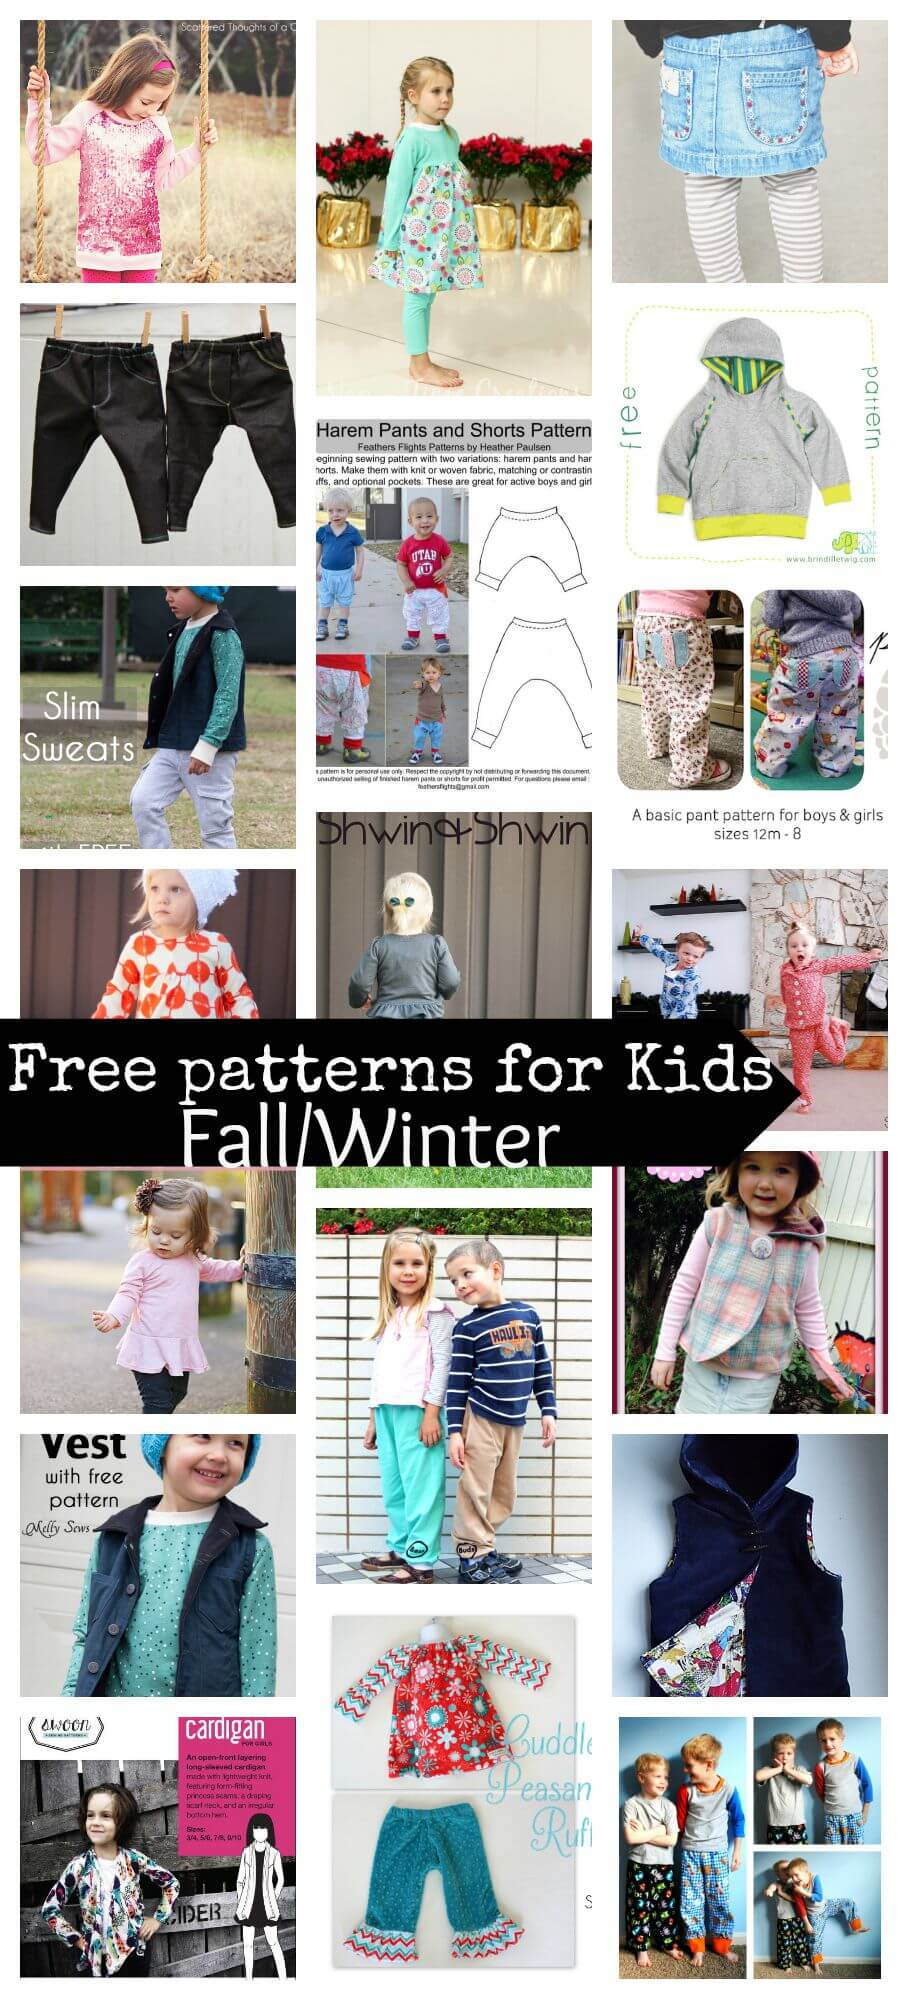 20 free sewing patterns for kids fallwinter